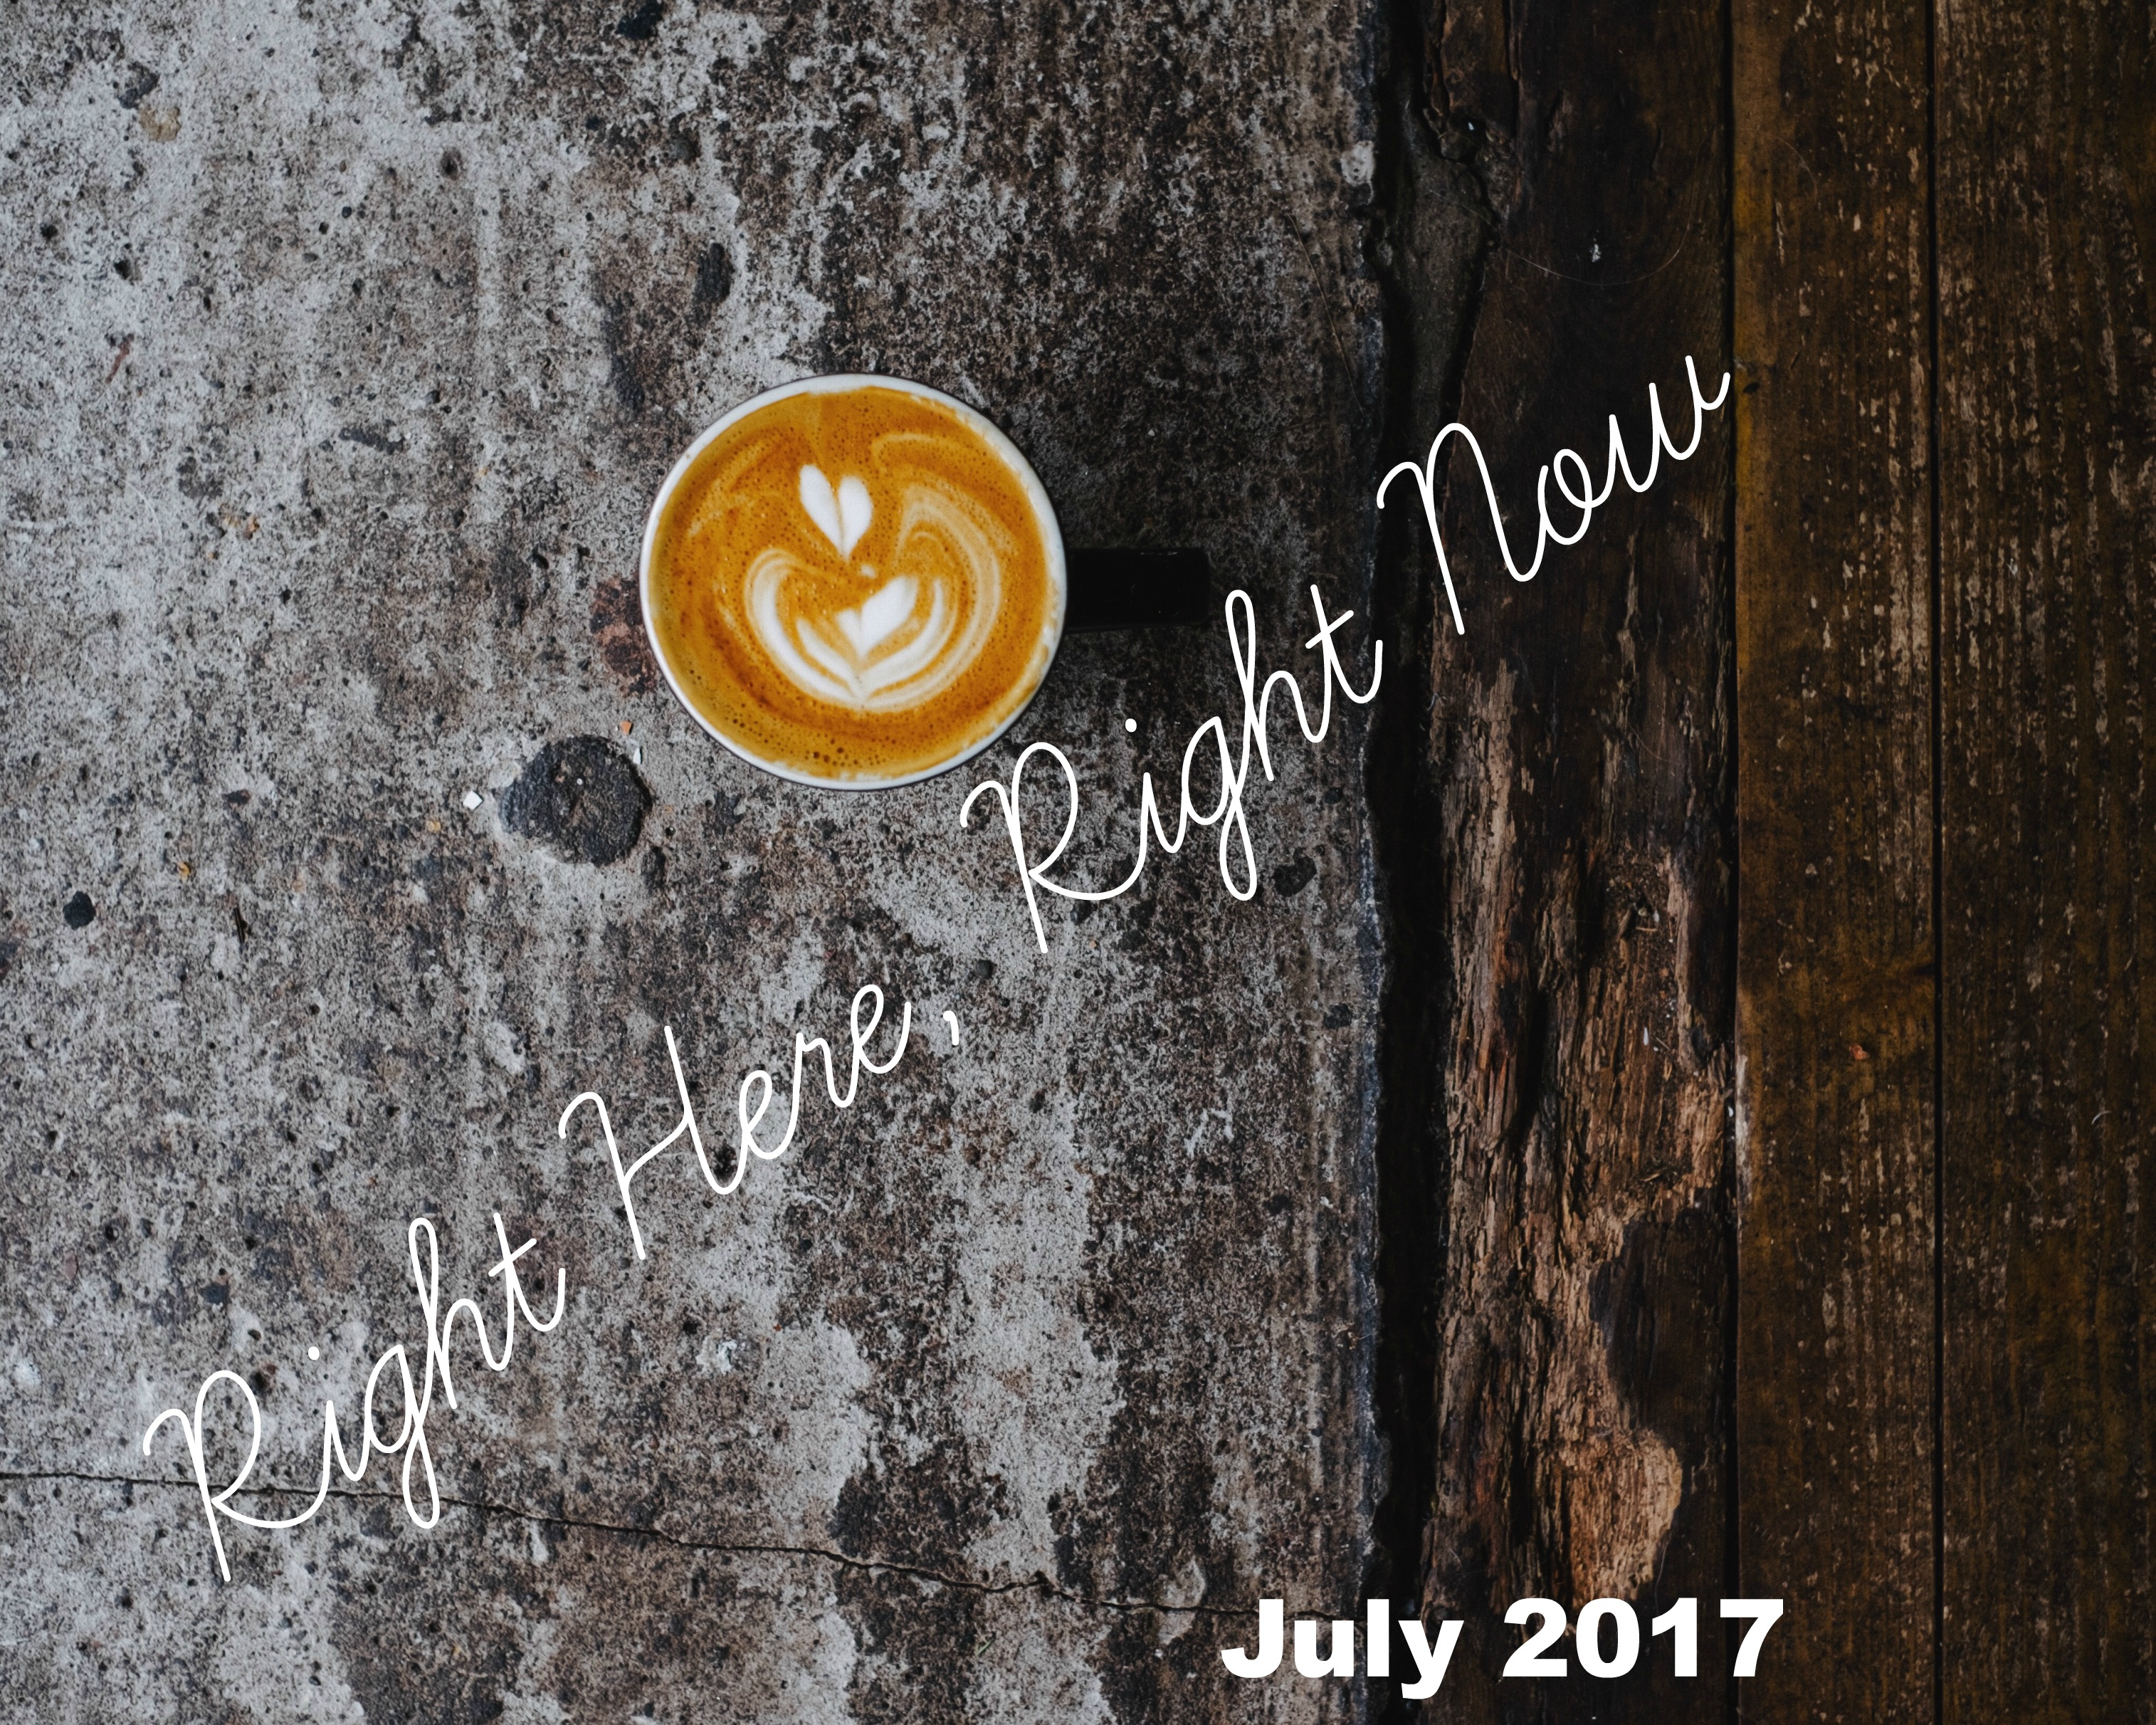 Right Here, Right Now July is a monthly lifestyle update from Aly Hodge of Bug,Bird And Bee